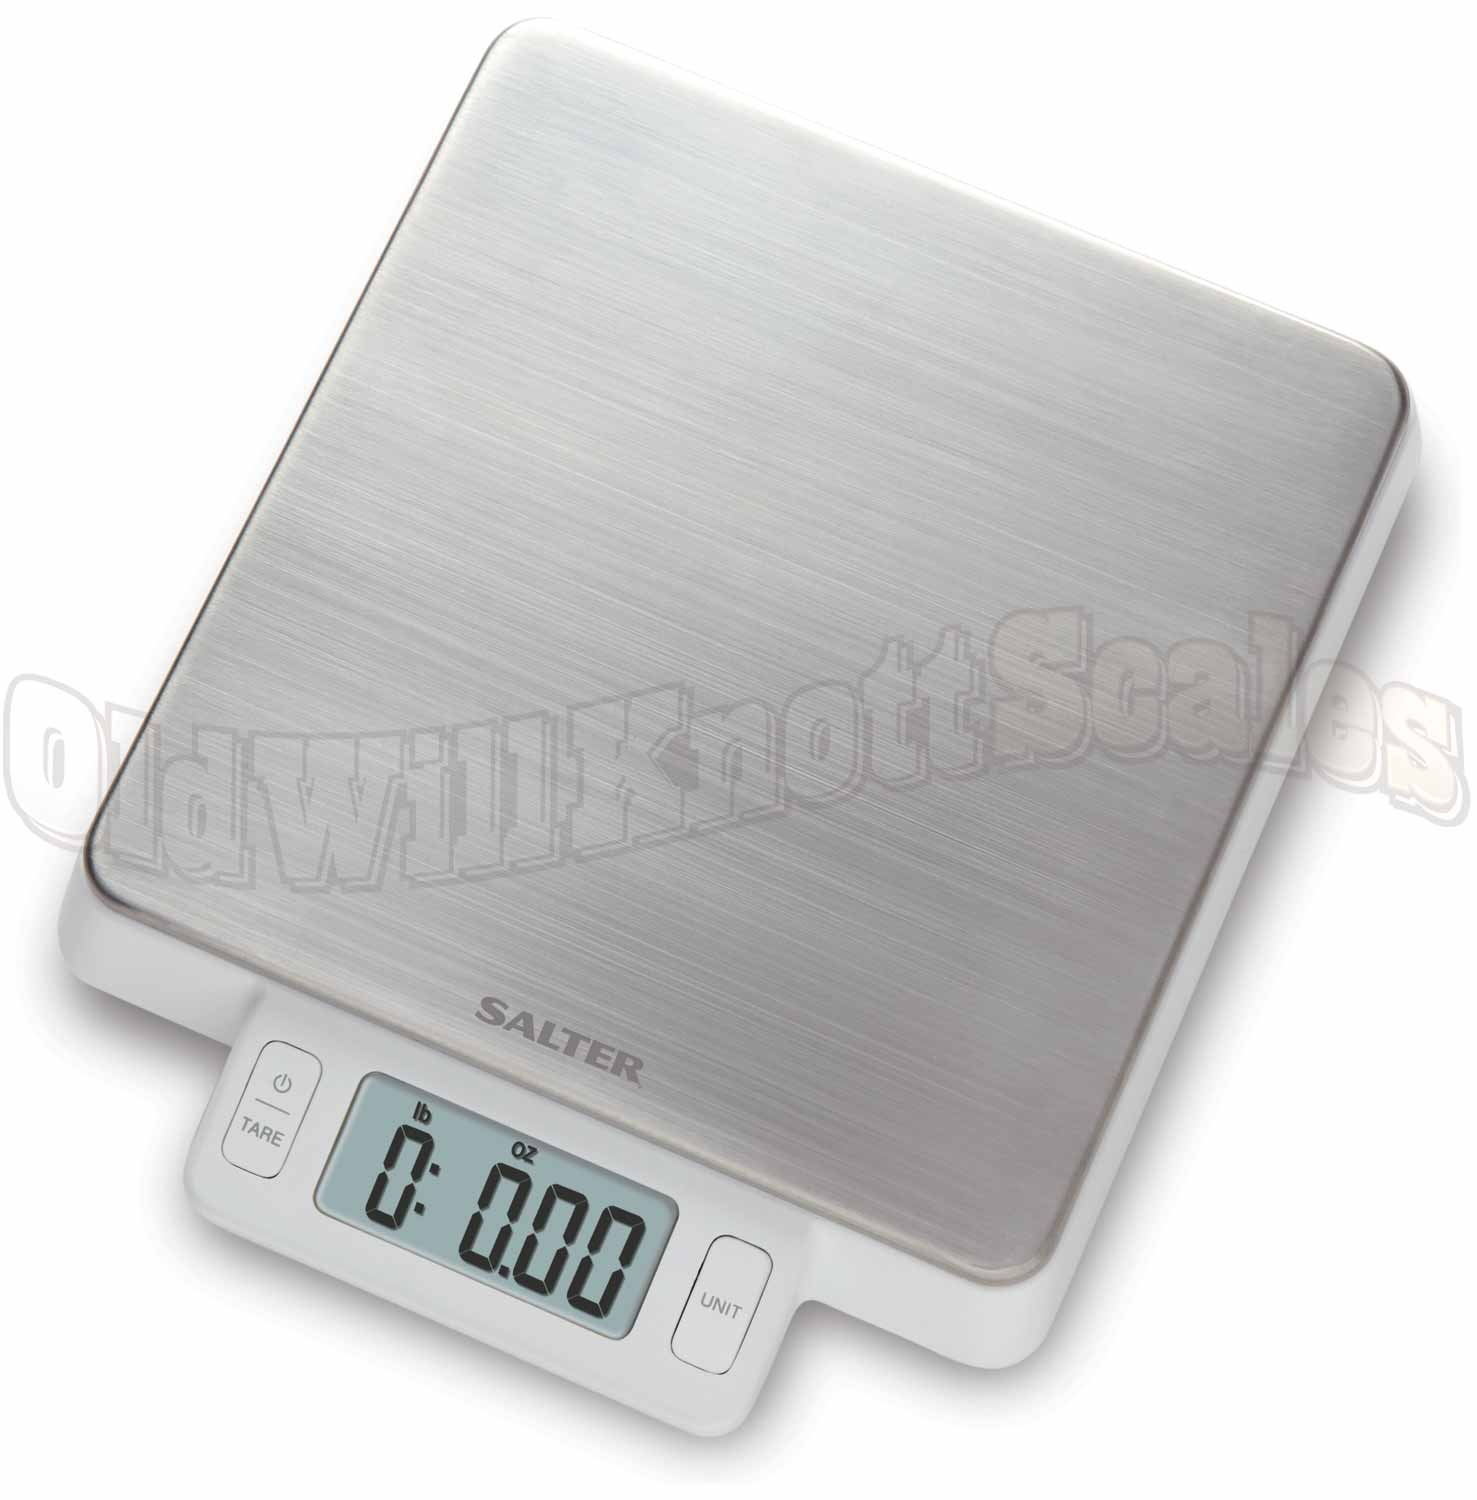 The Salter 1078SS Digital Kitchen Scale with Dishwasher Safe Platform